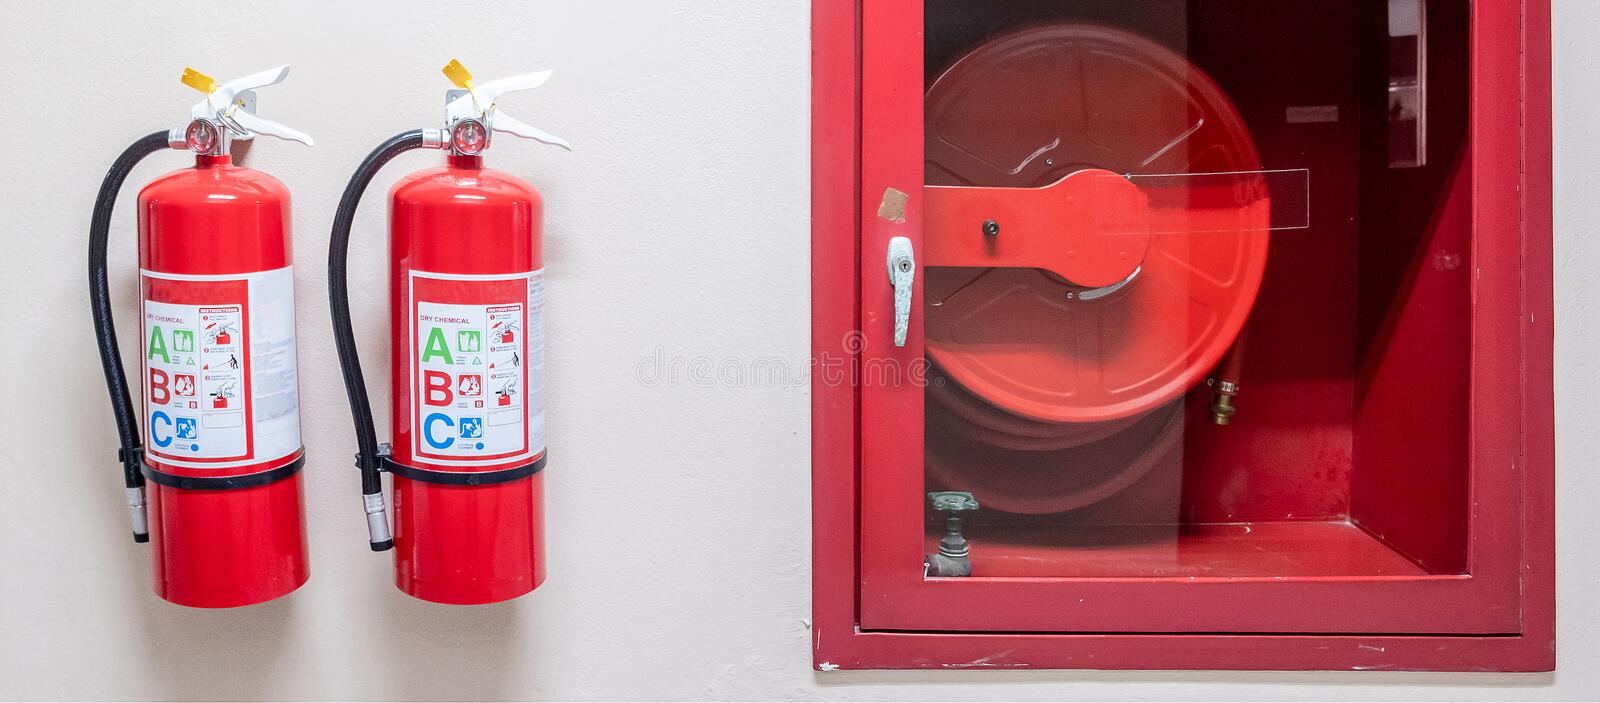 Fire extinguisher system on the wall background, powerful emergency equipment for industrial stock image